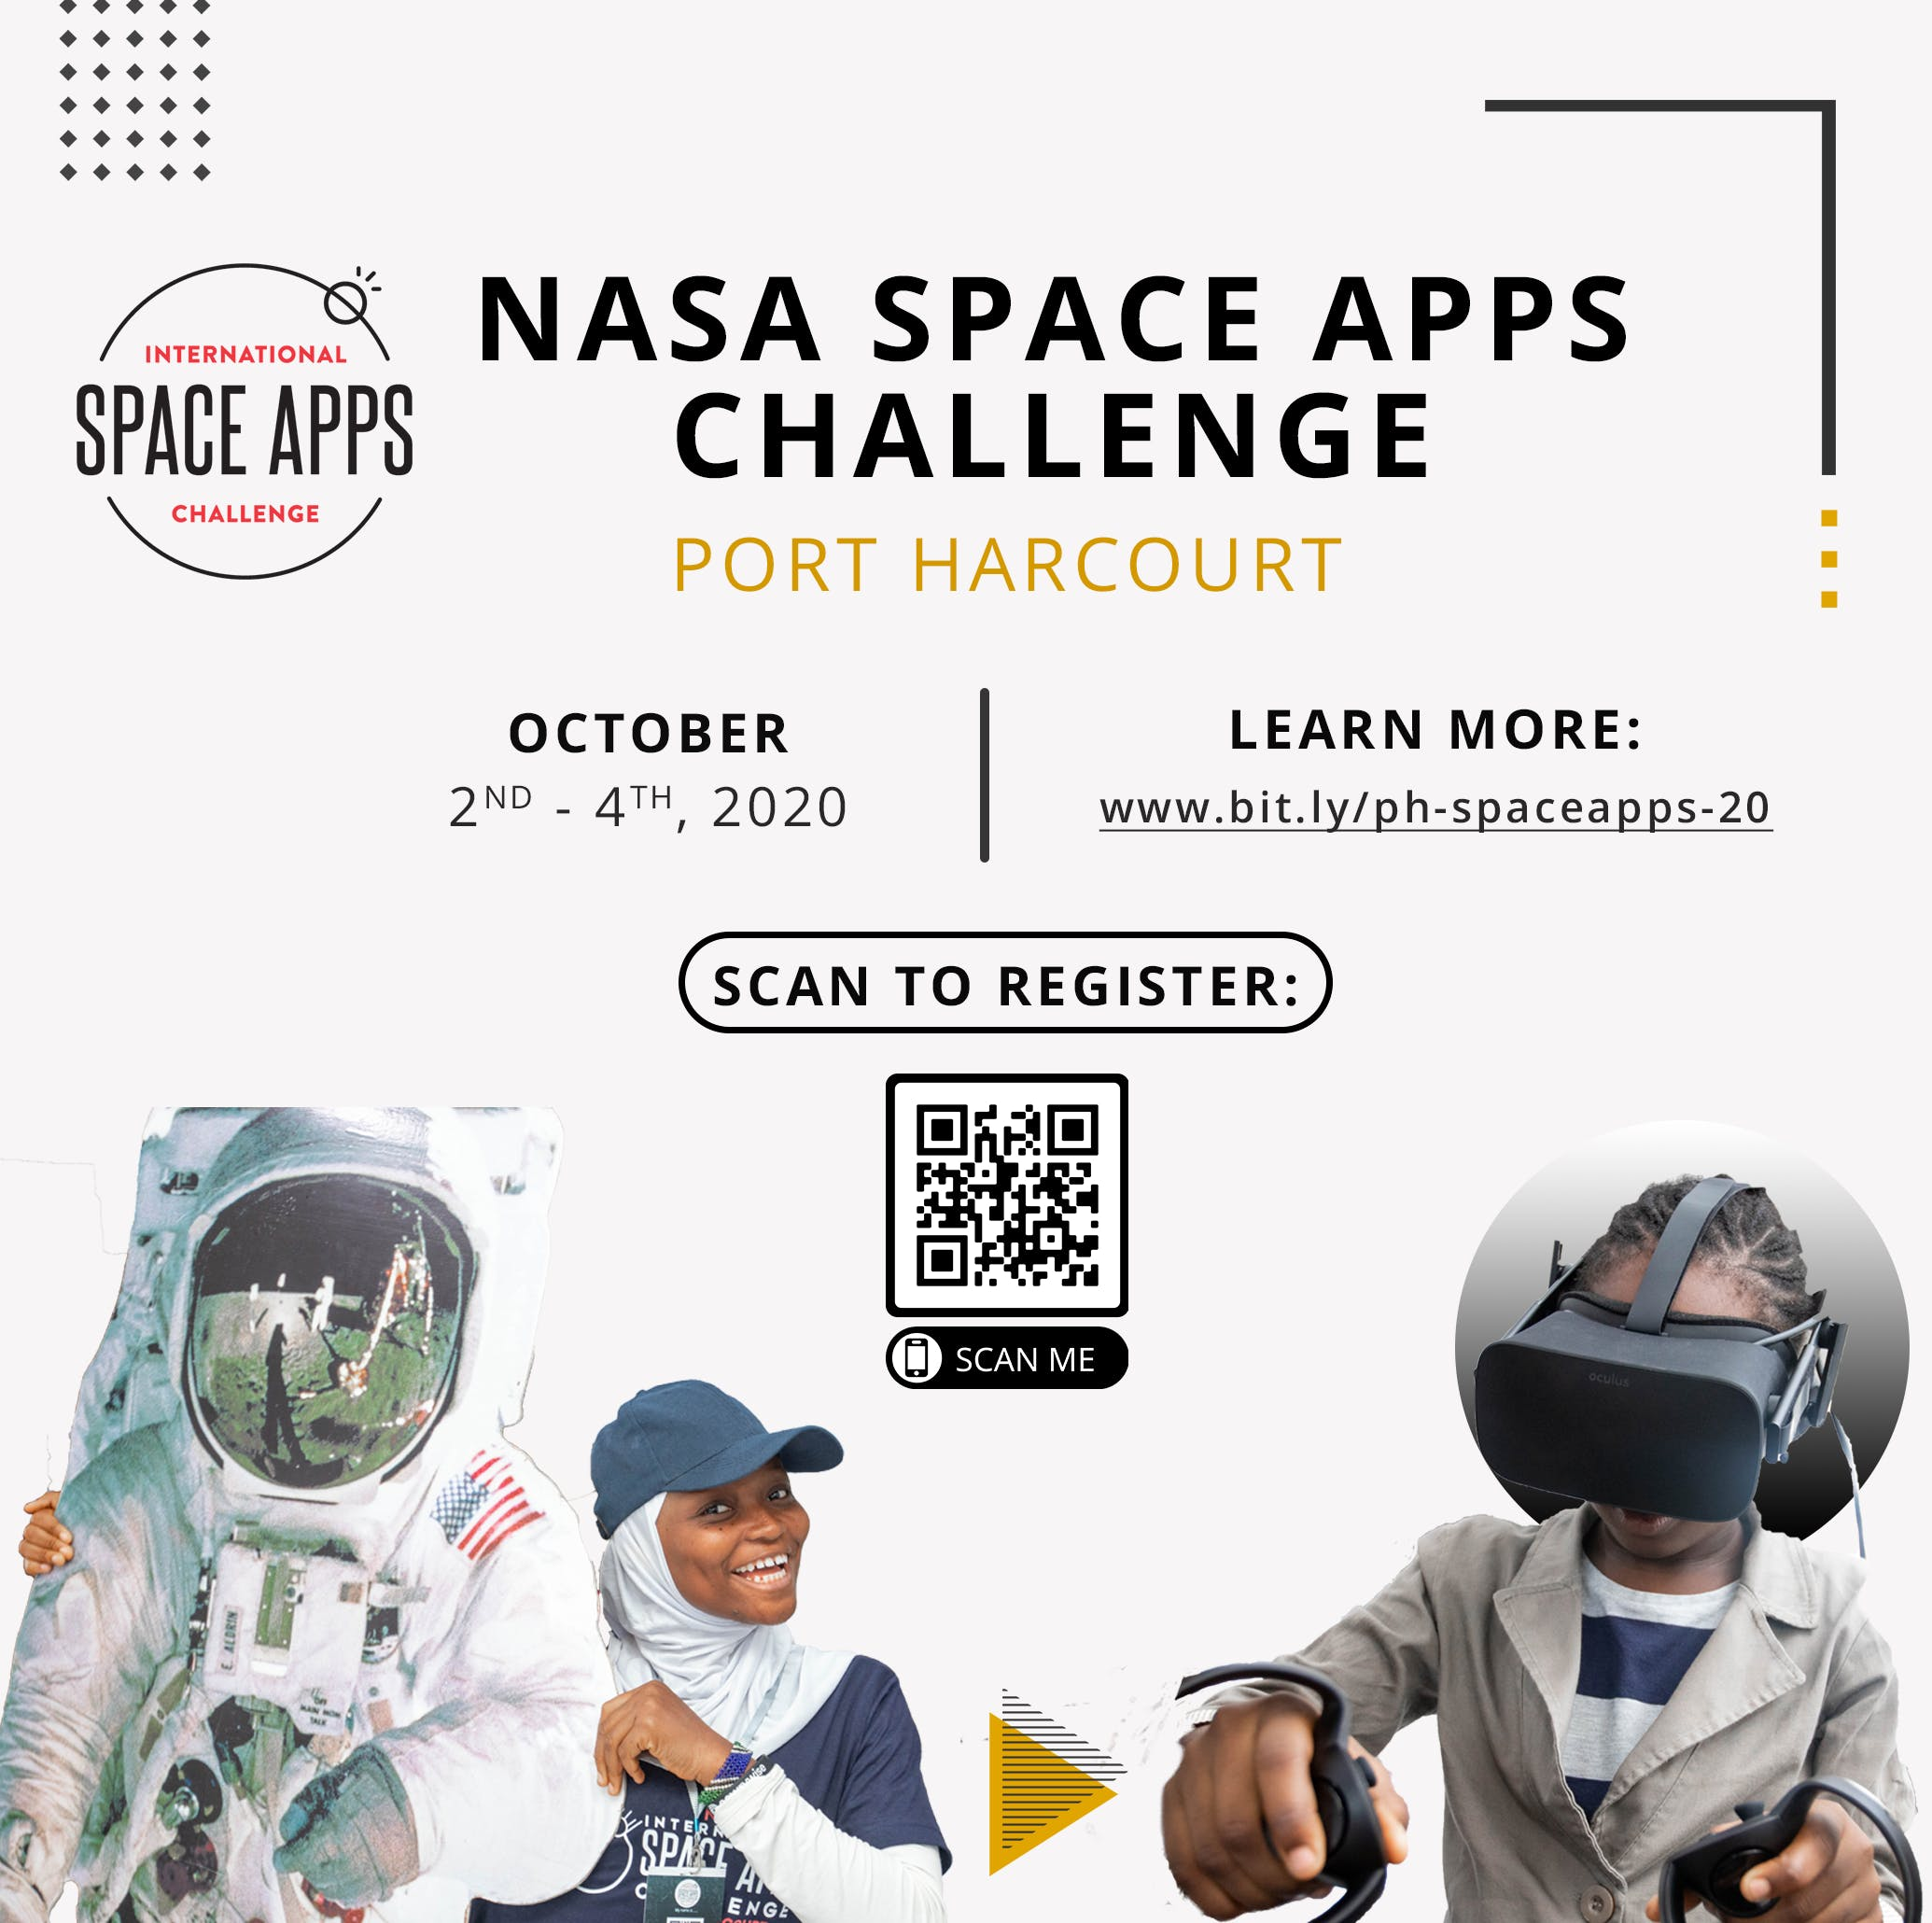 NASA Space Apps Challenge Port Harcourt